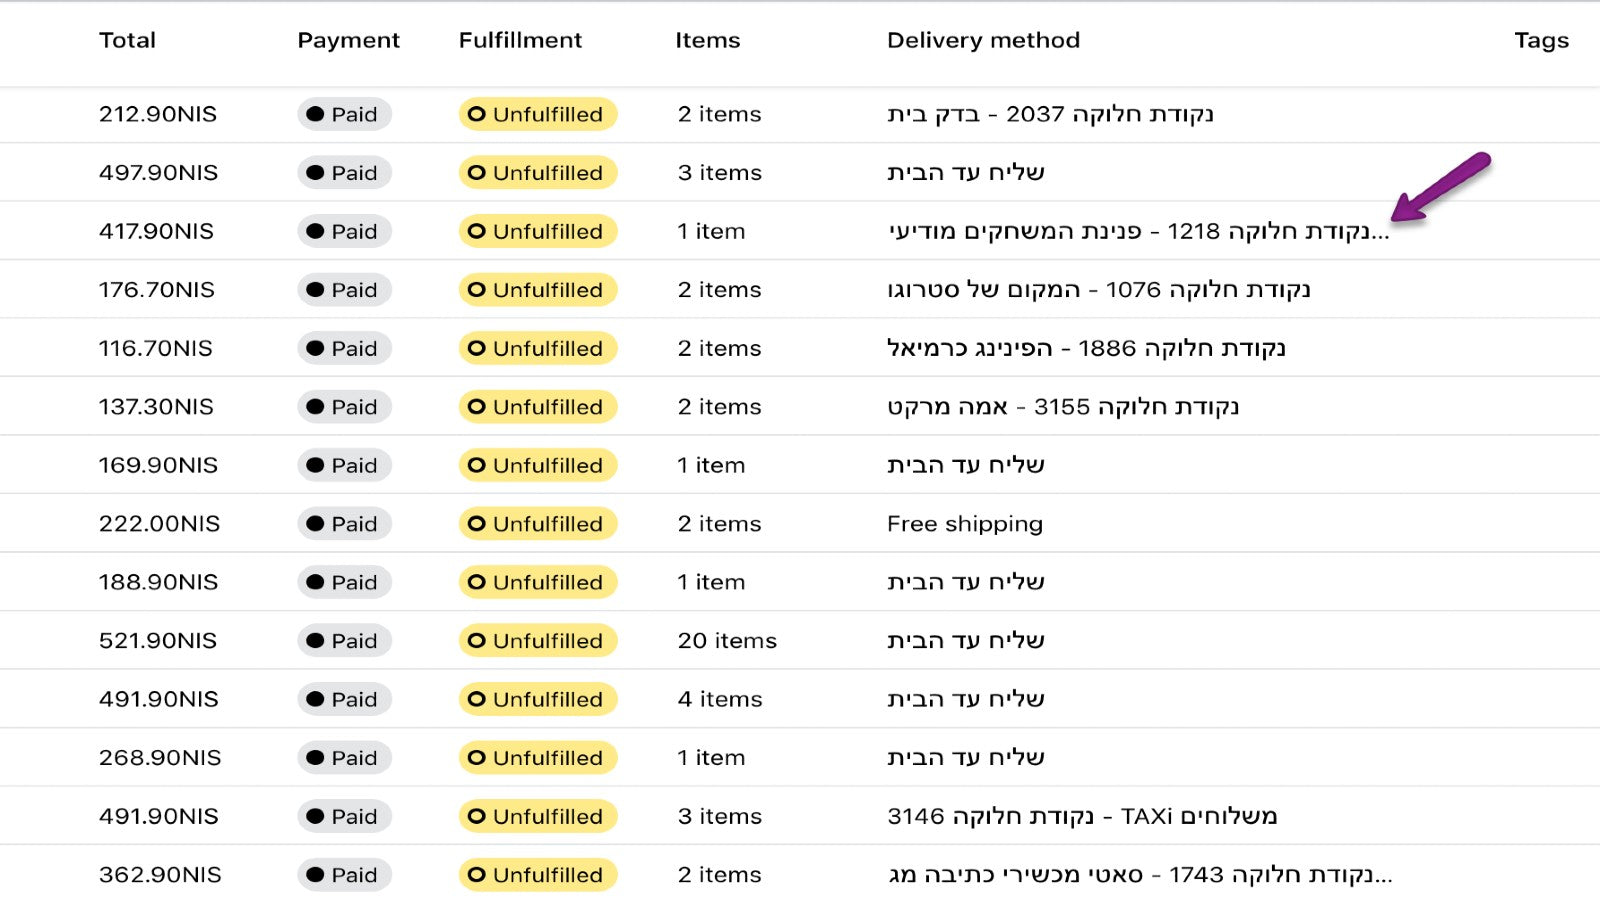 Order list shows pickup point details